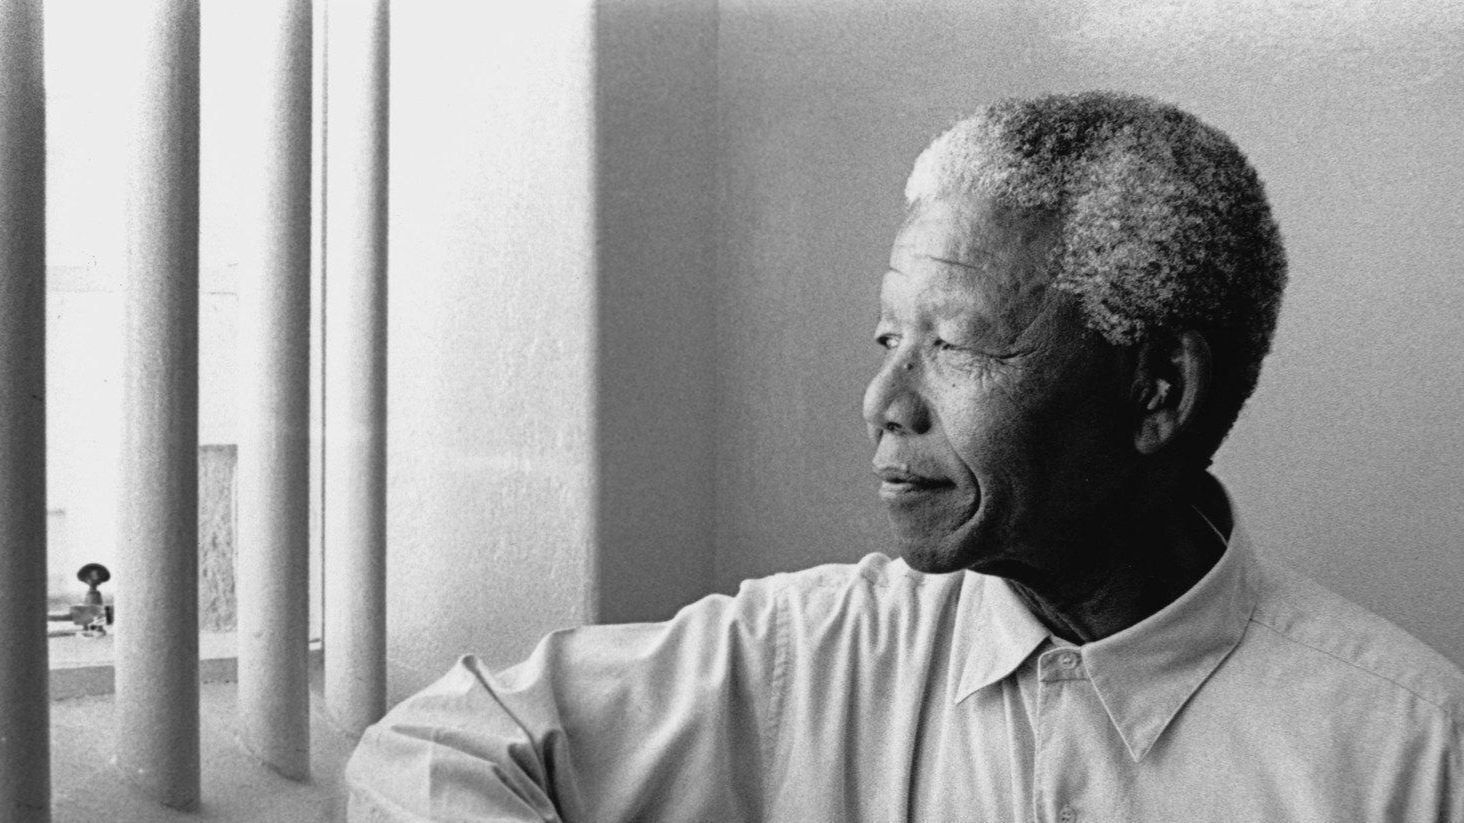 Nelson Mandela: Anti-apartheid icon reconciled a nation - Los Angeles Times